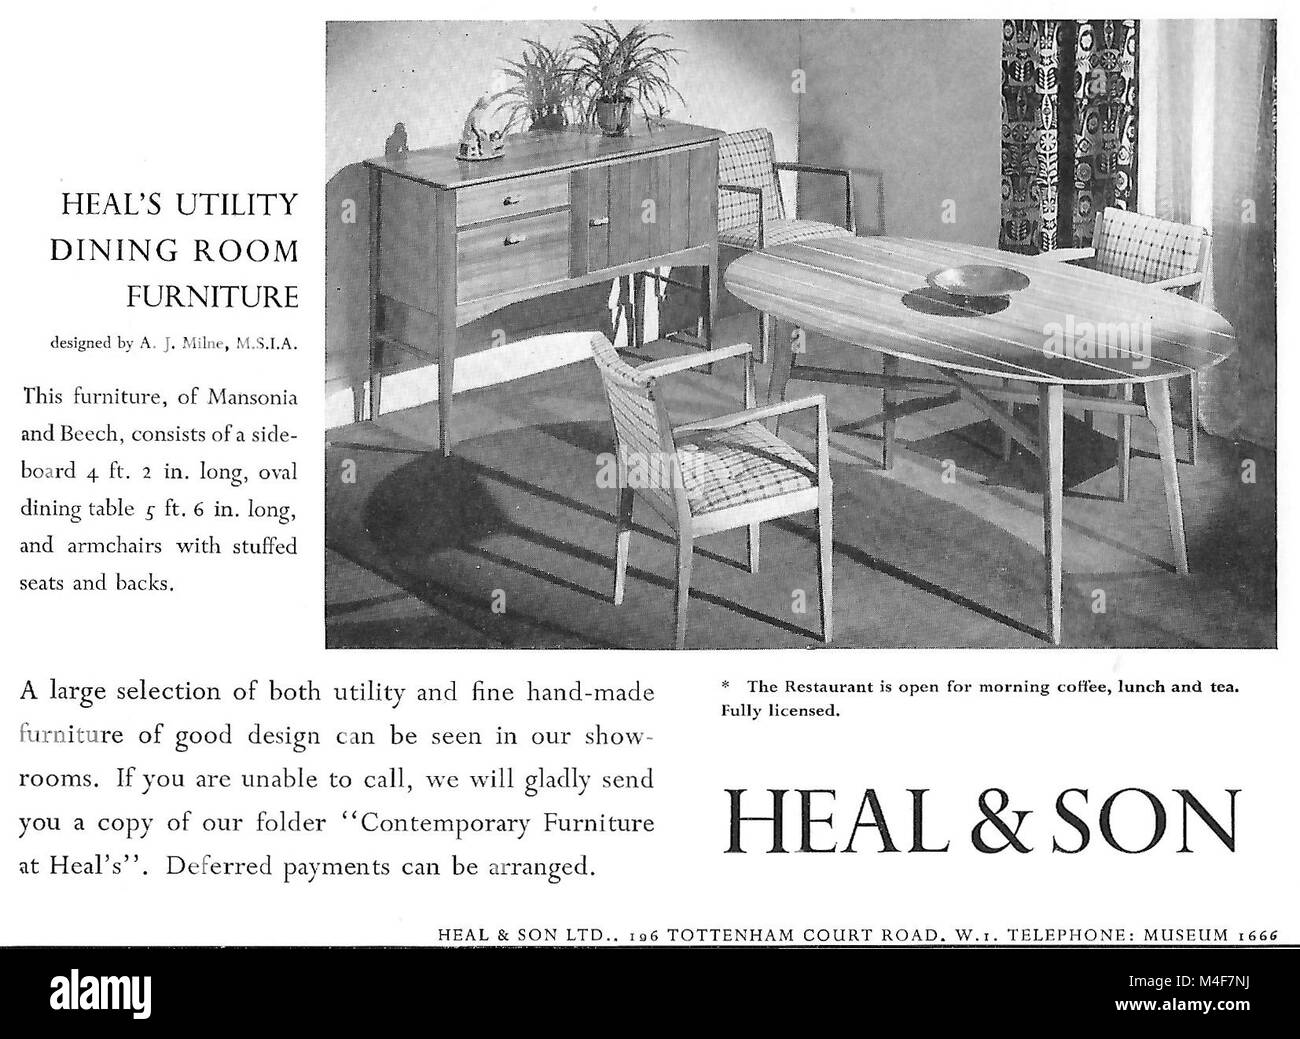 heal son furniture advert advertising in country life magazine uk